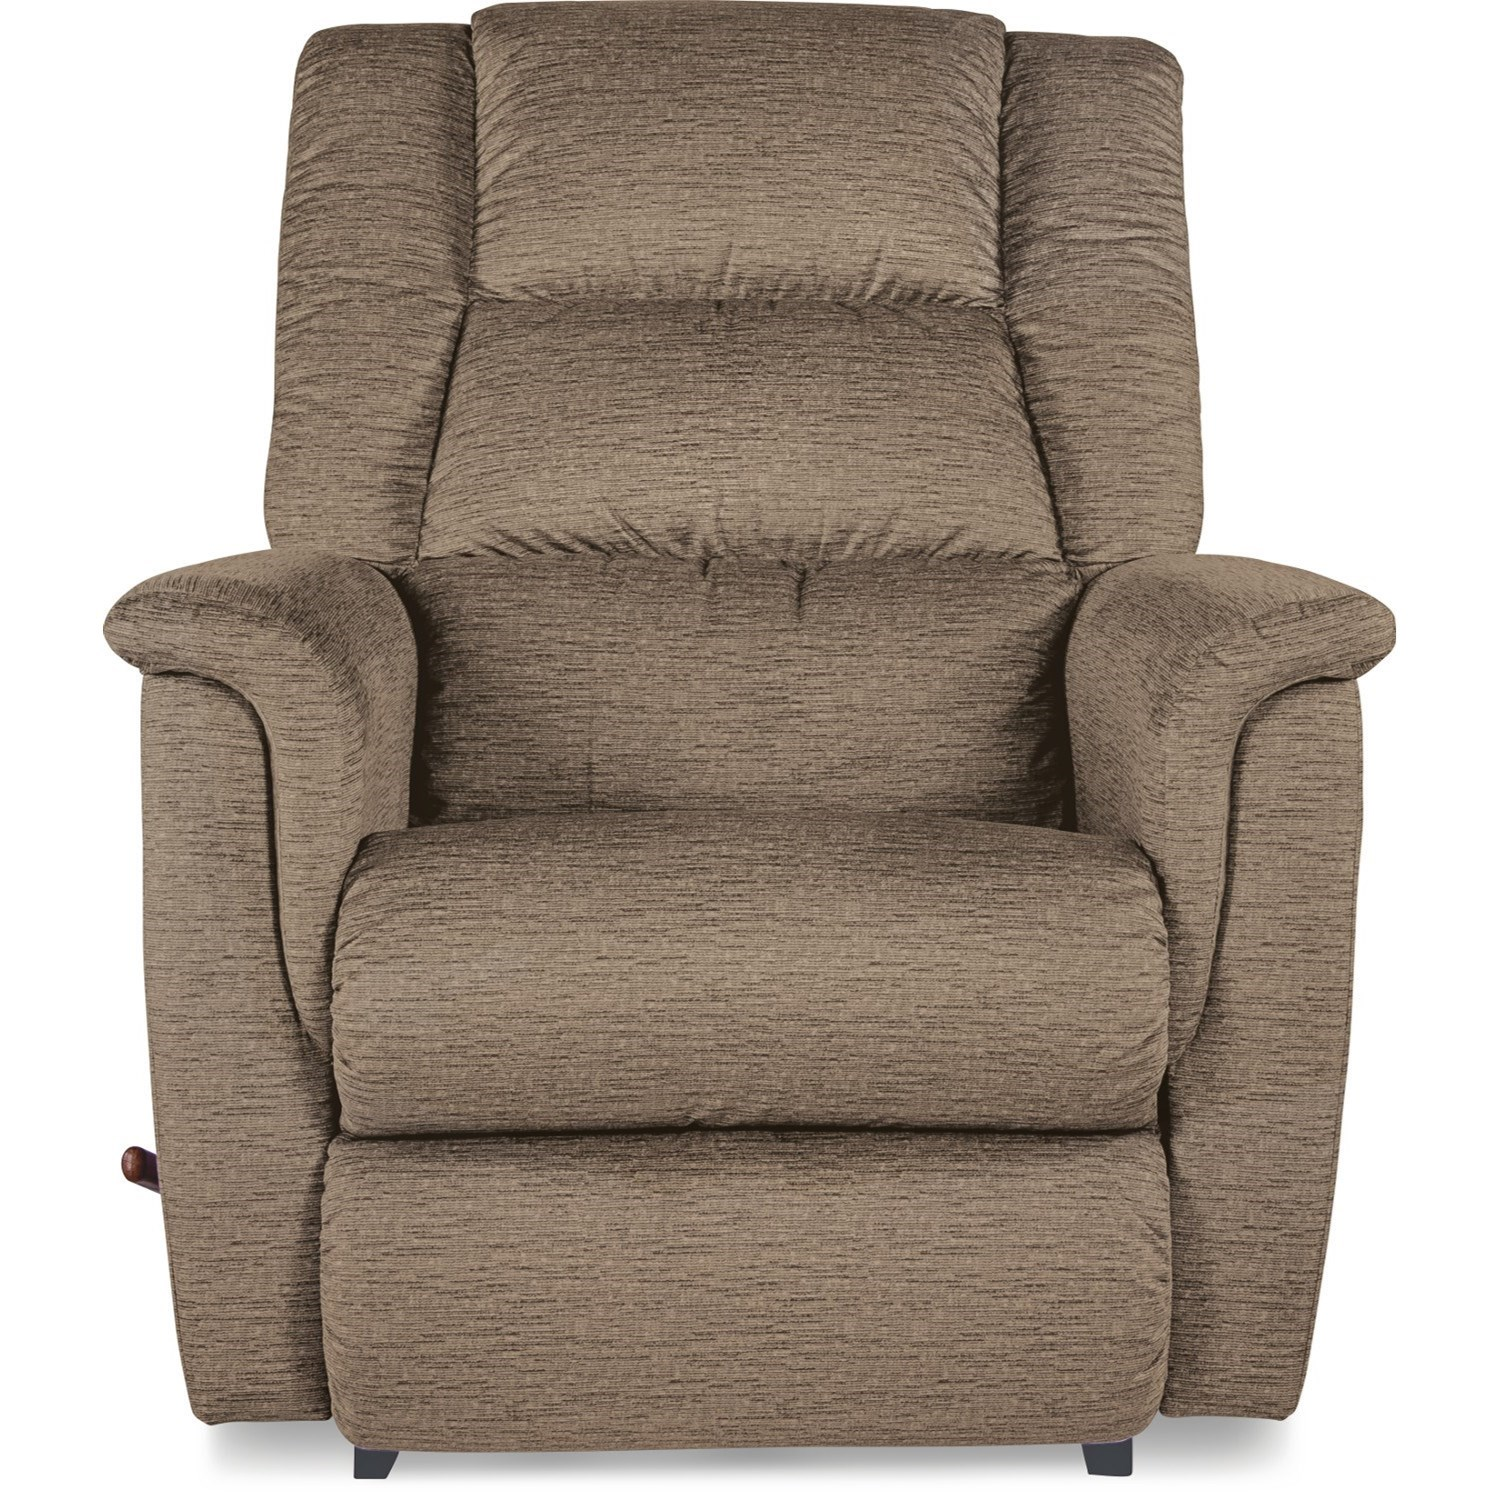 Murray Rocker Recliner by La-Z-Boy at Sparks HomeStore